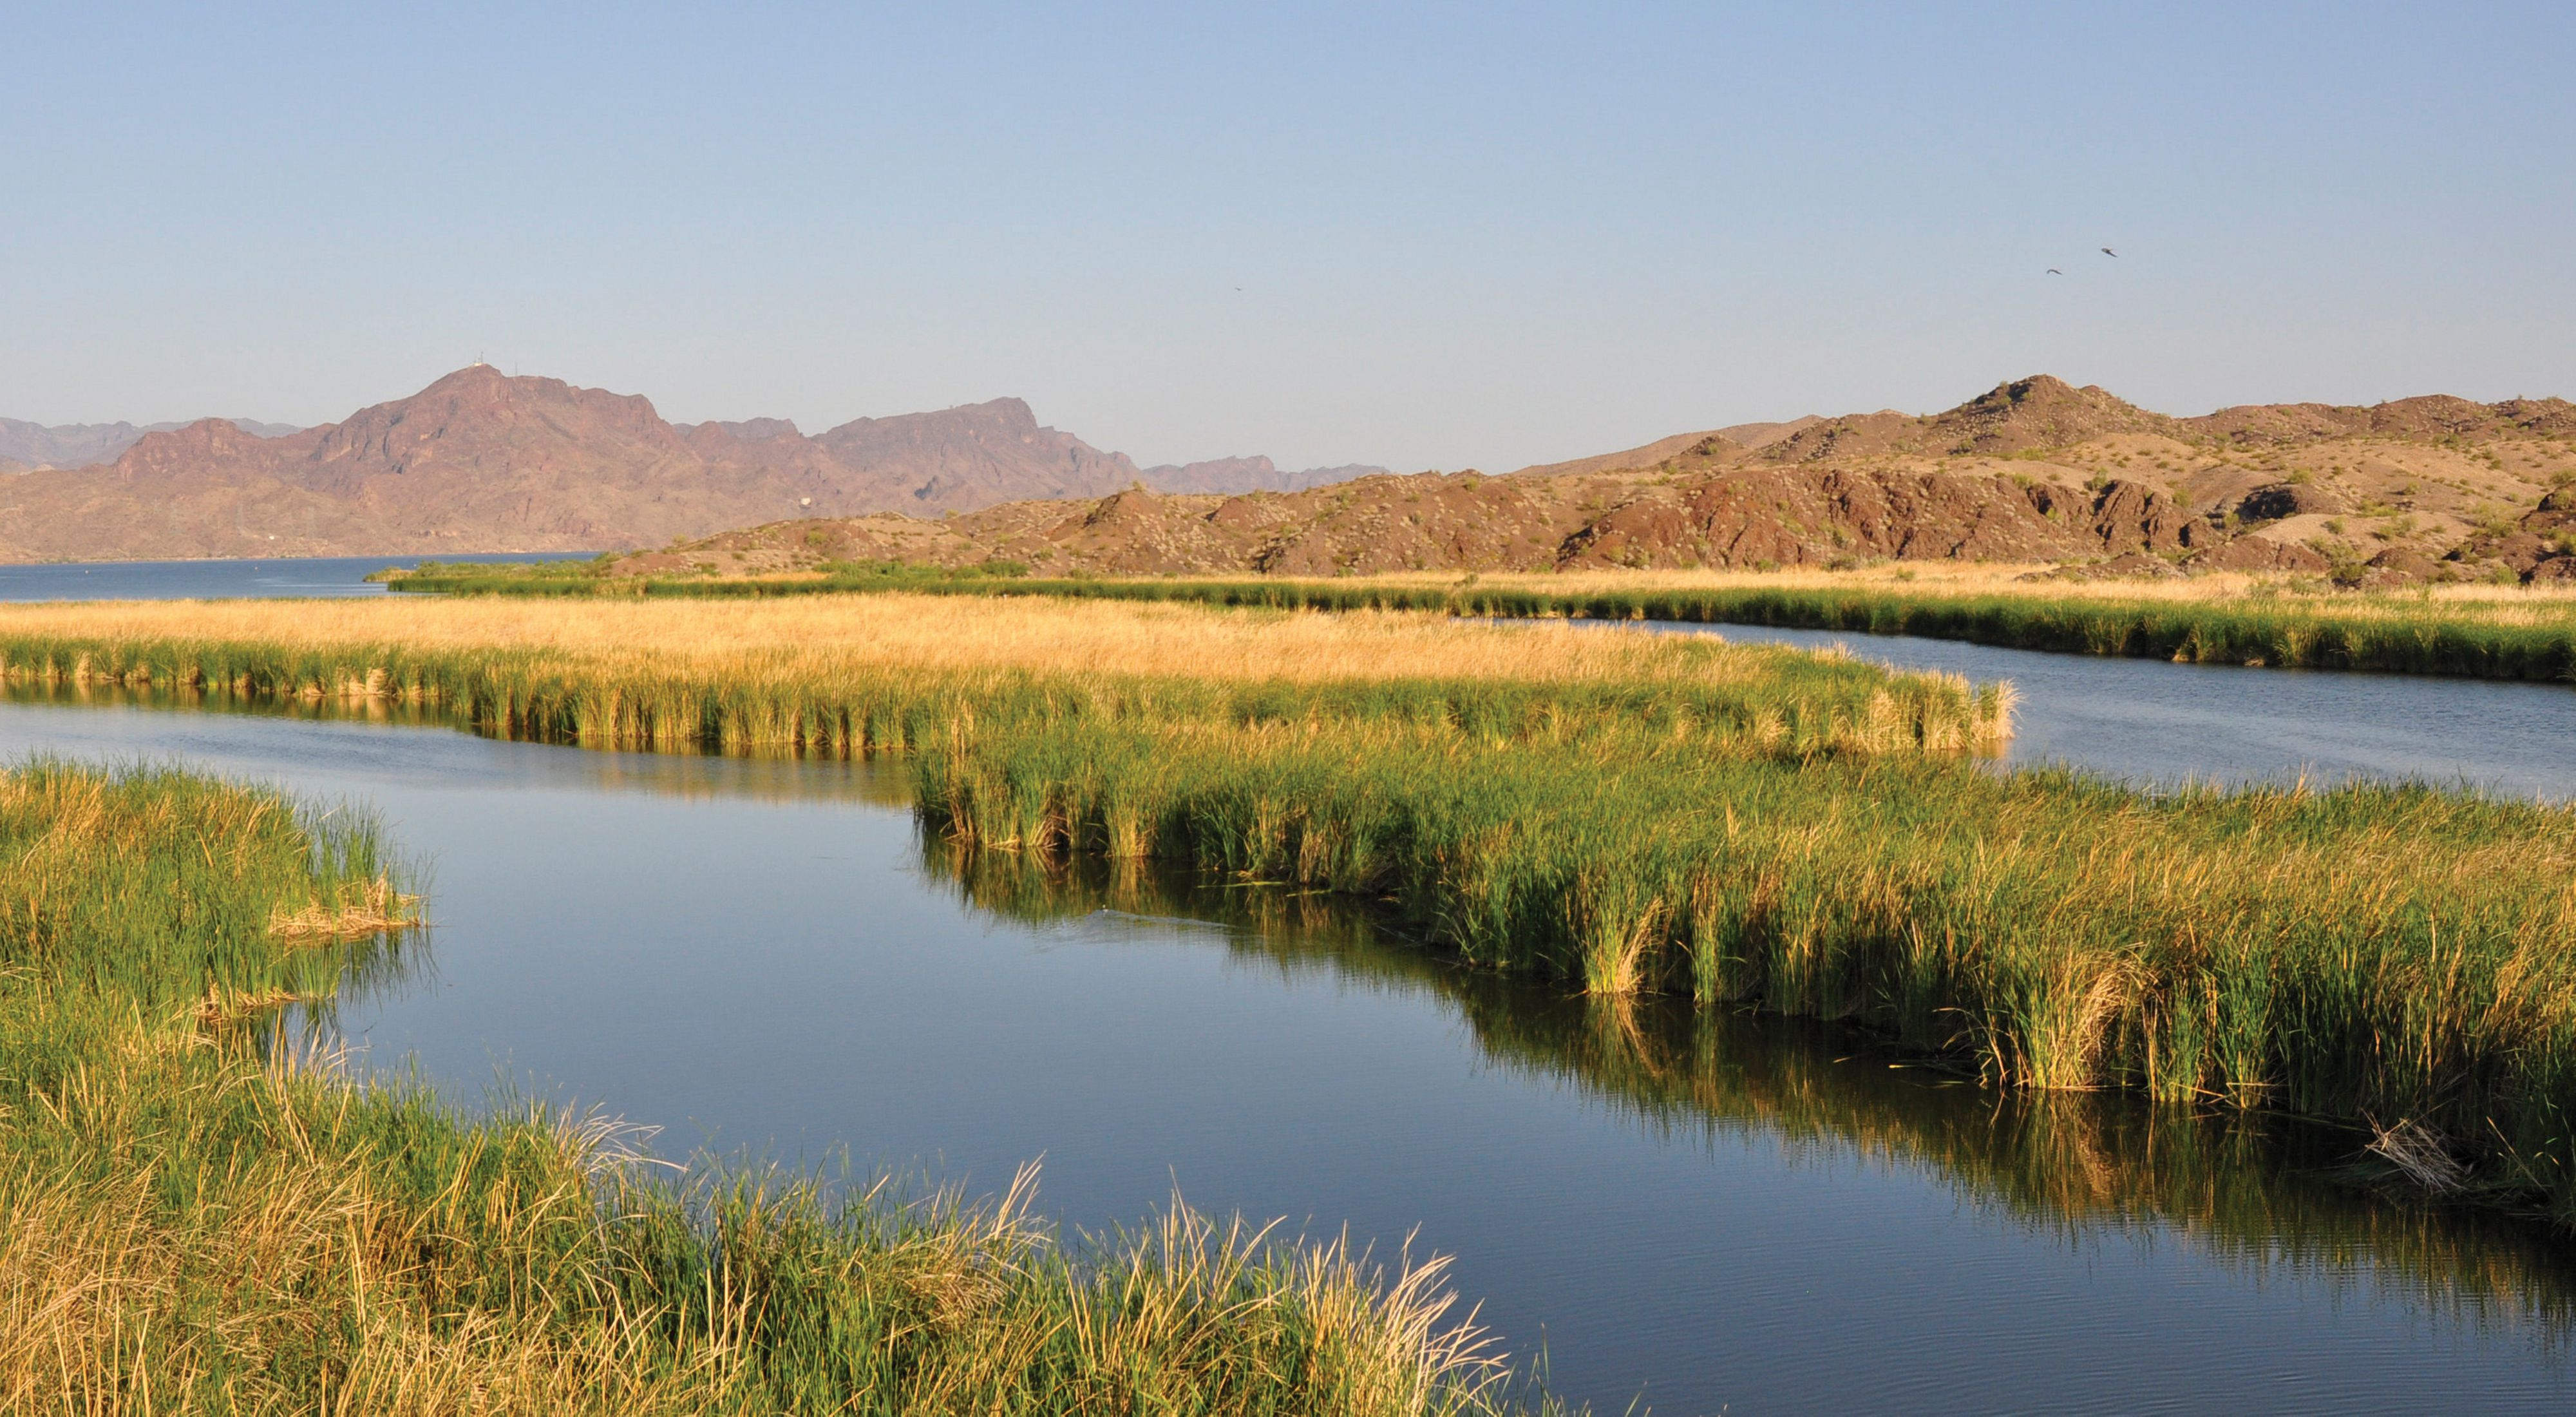 part of the Colorado River system.